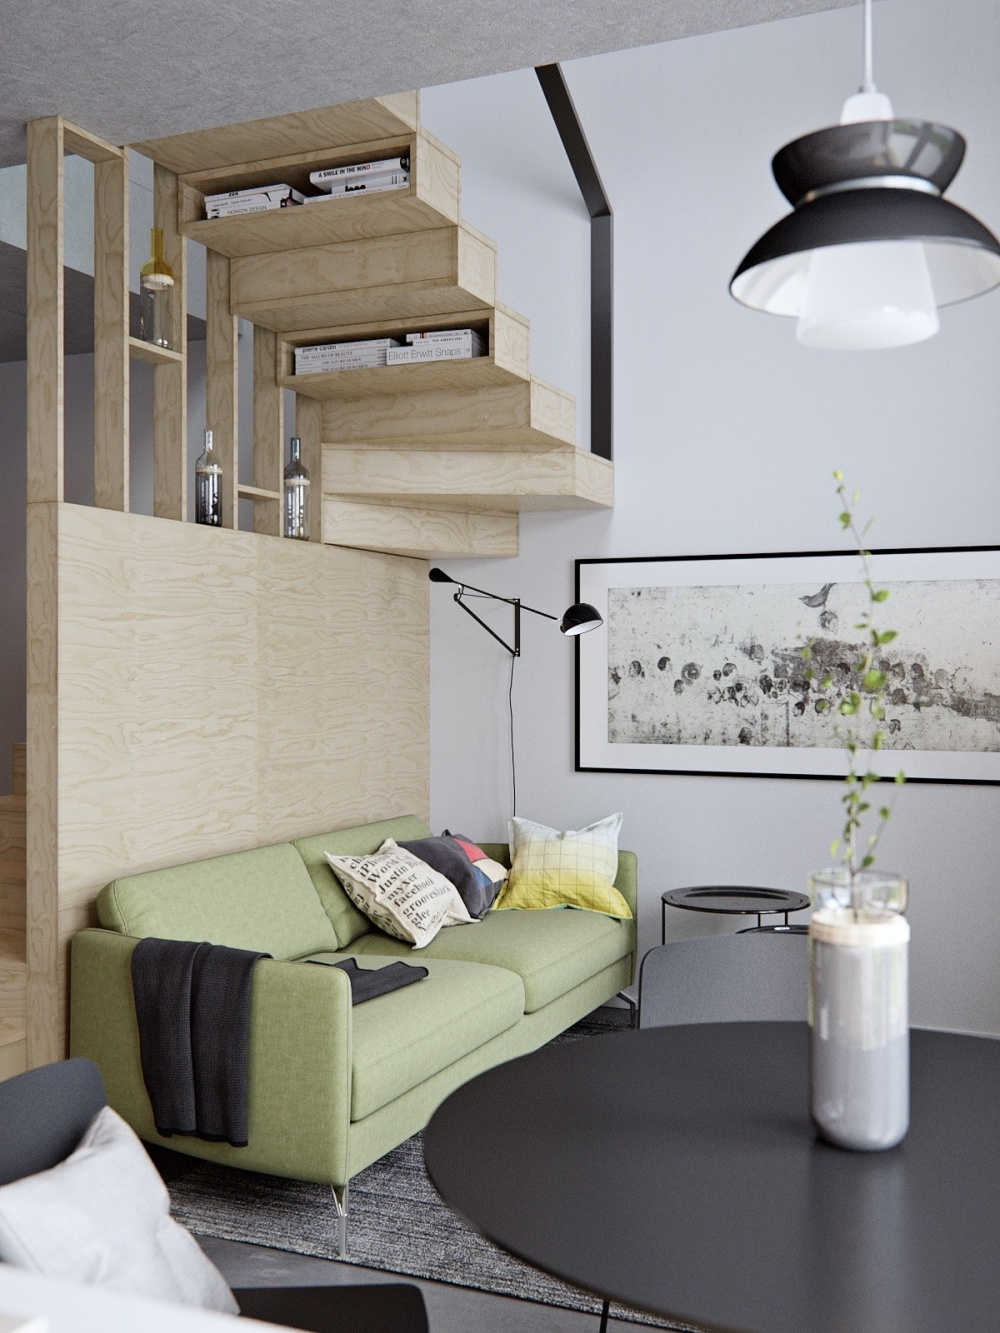 Stupendous Small Apartment Design On